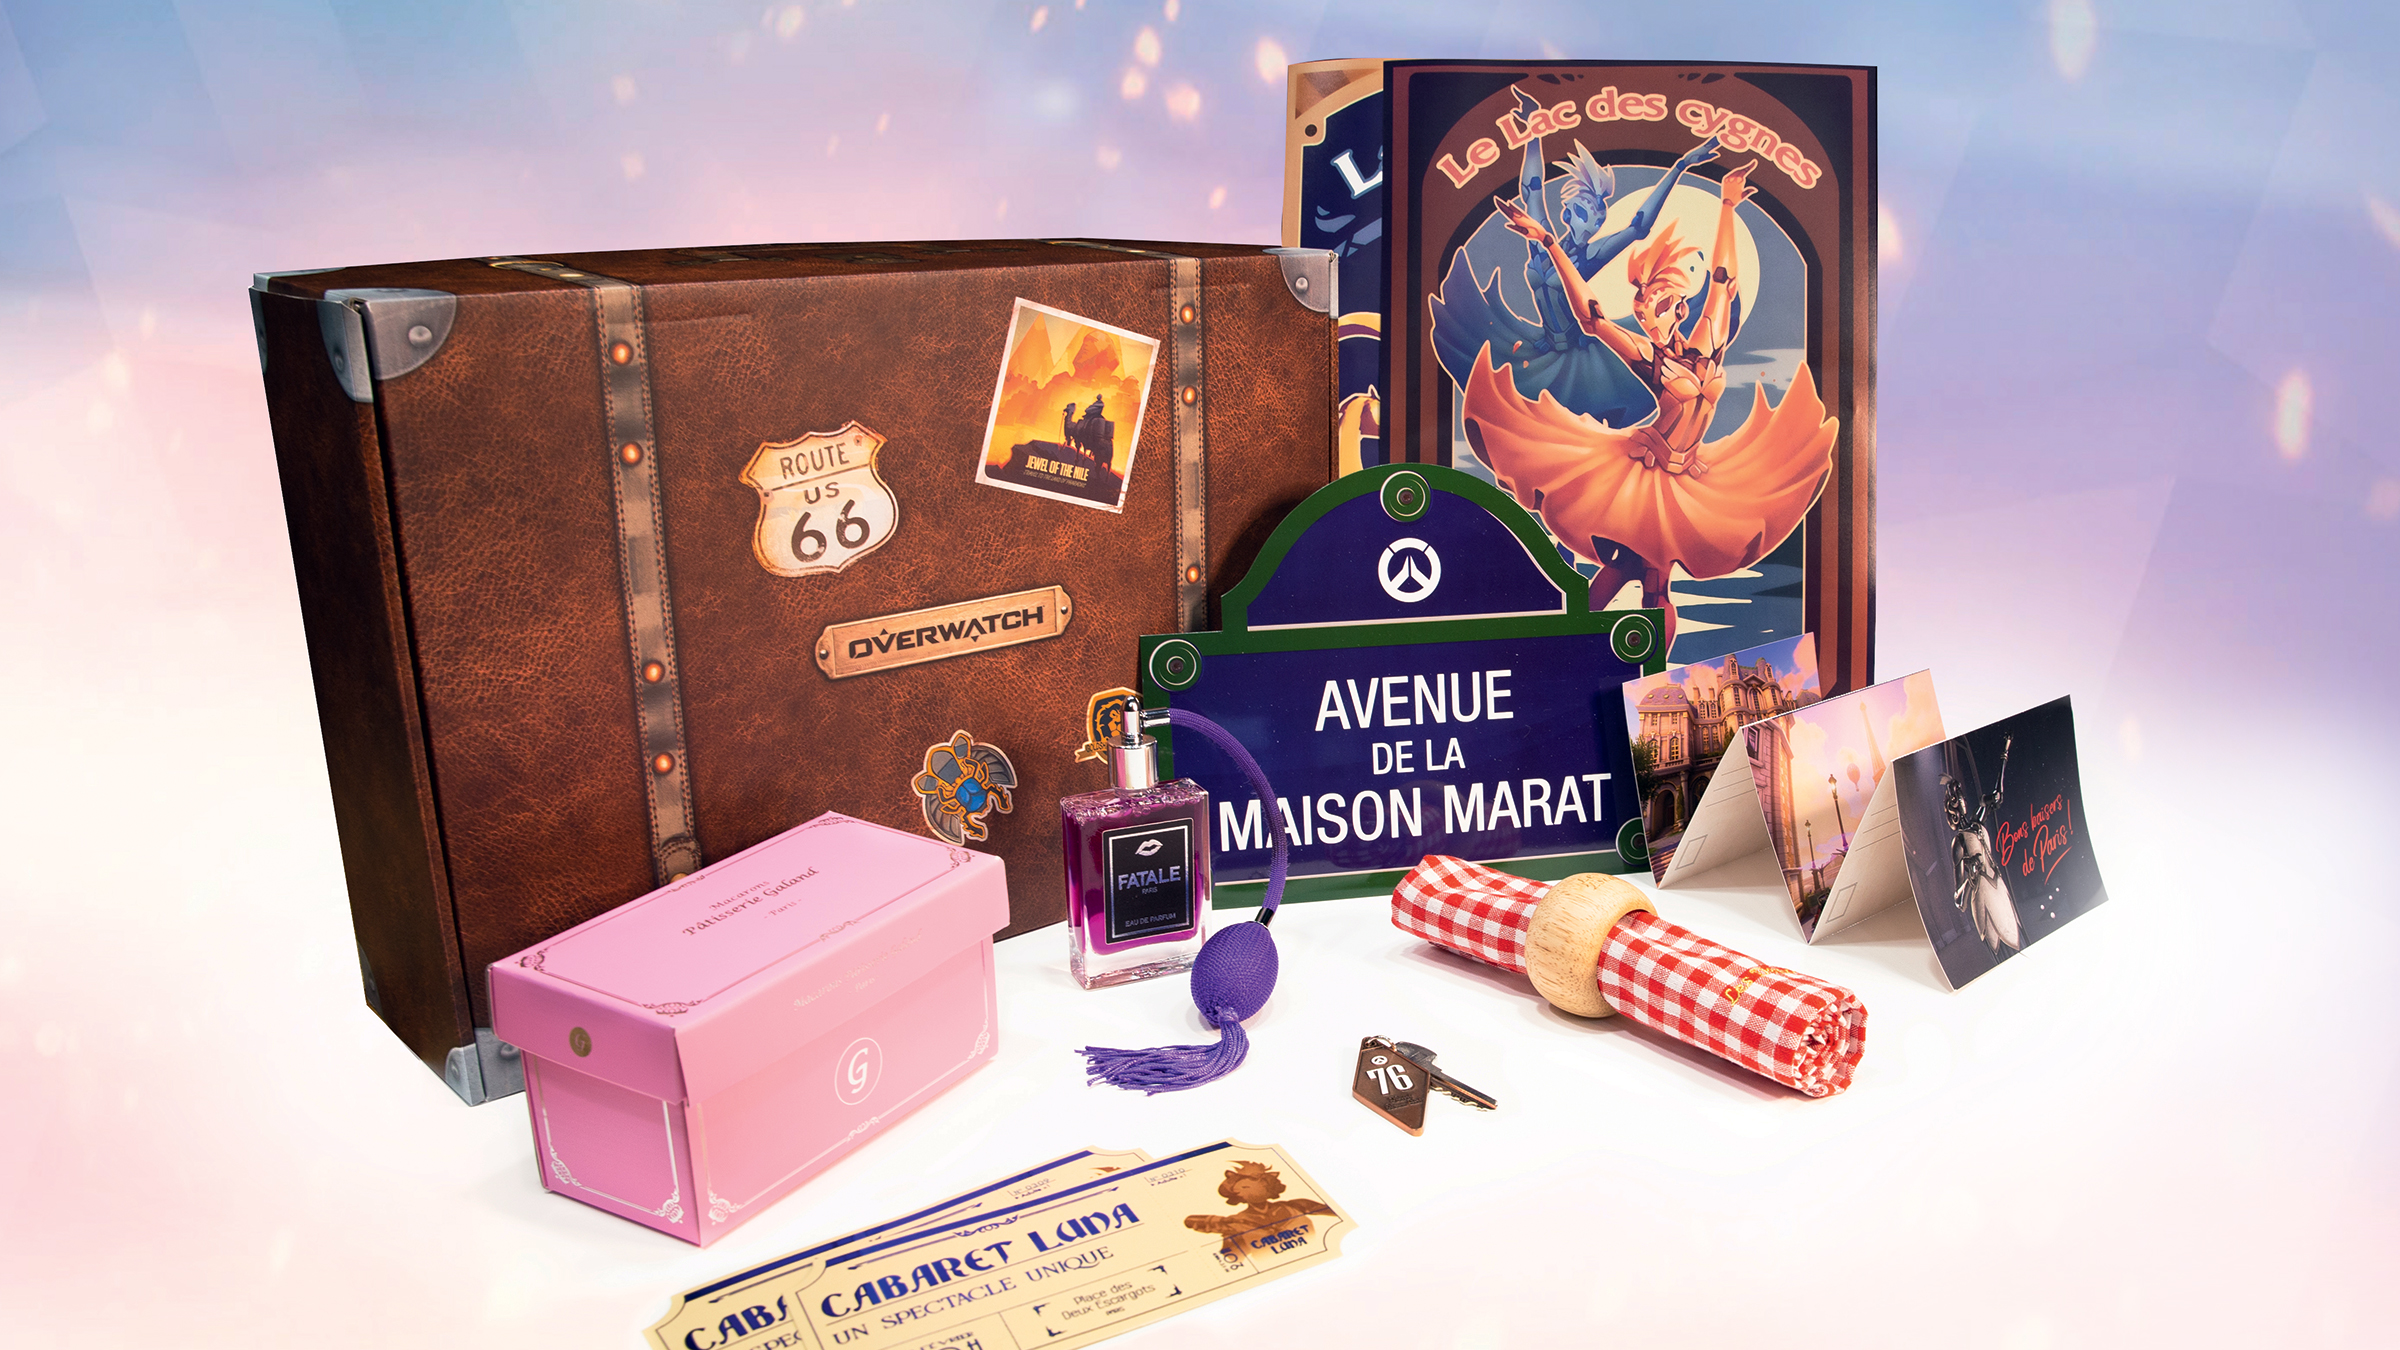 Overwatch Europe Paris Map Sweepstakes